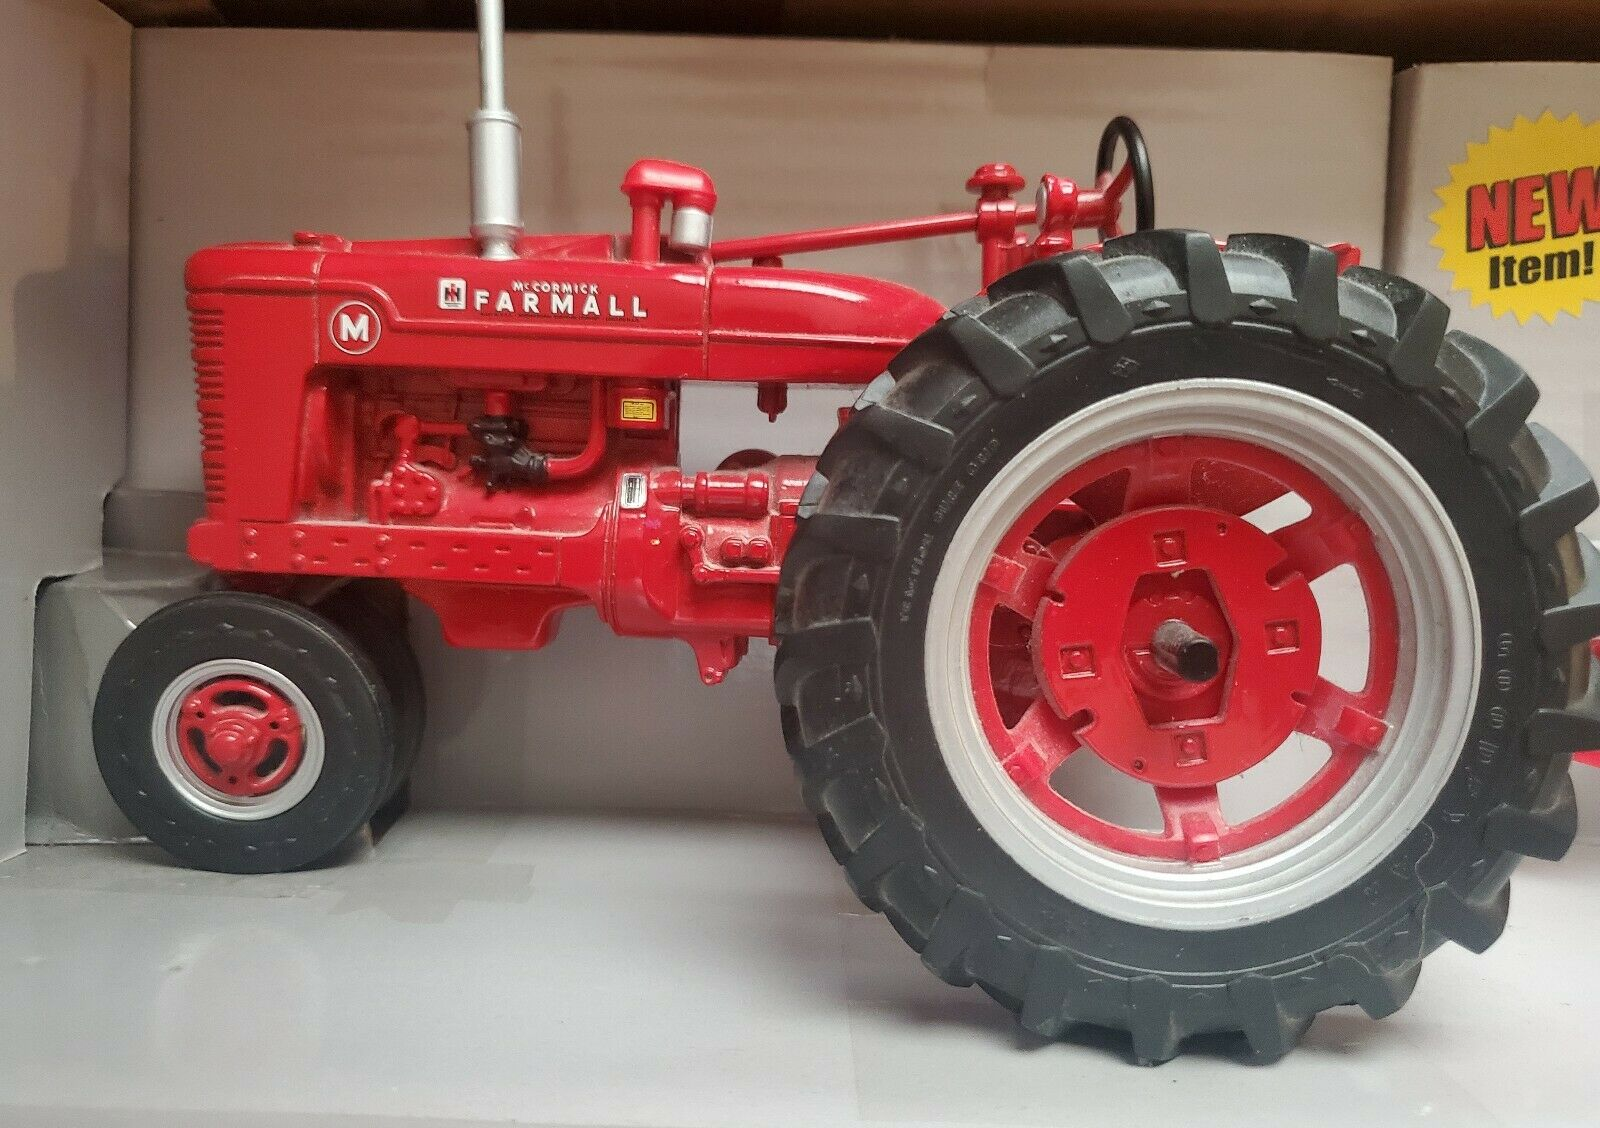 Diecast Tractor With Disk - Farmall M - Nice 2-Piece Set 1 16 Scale